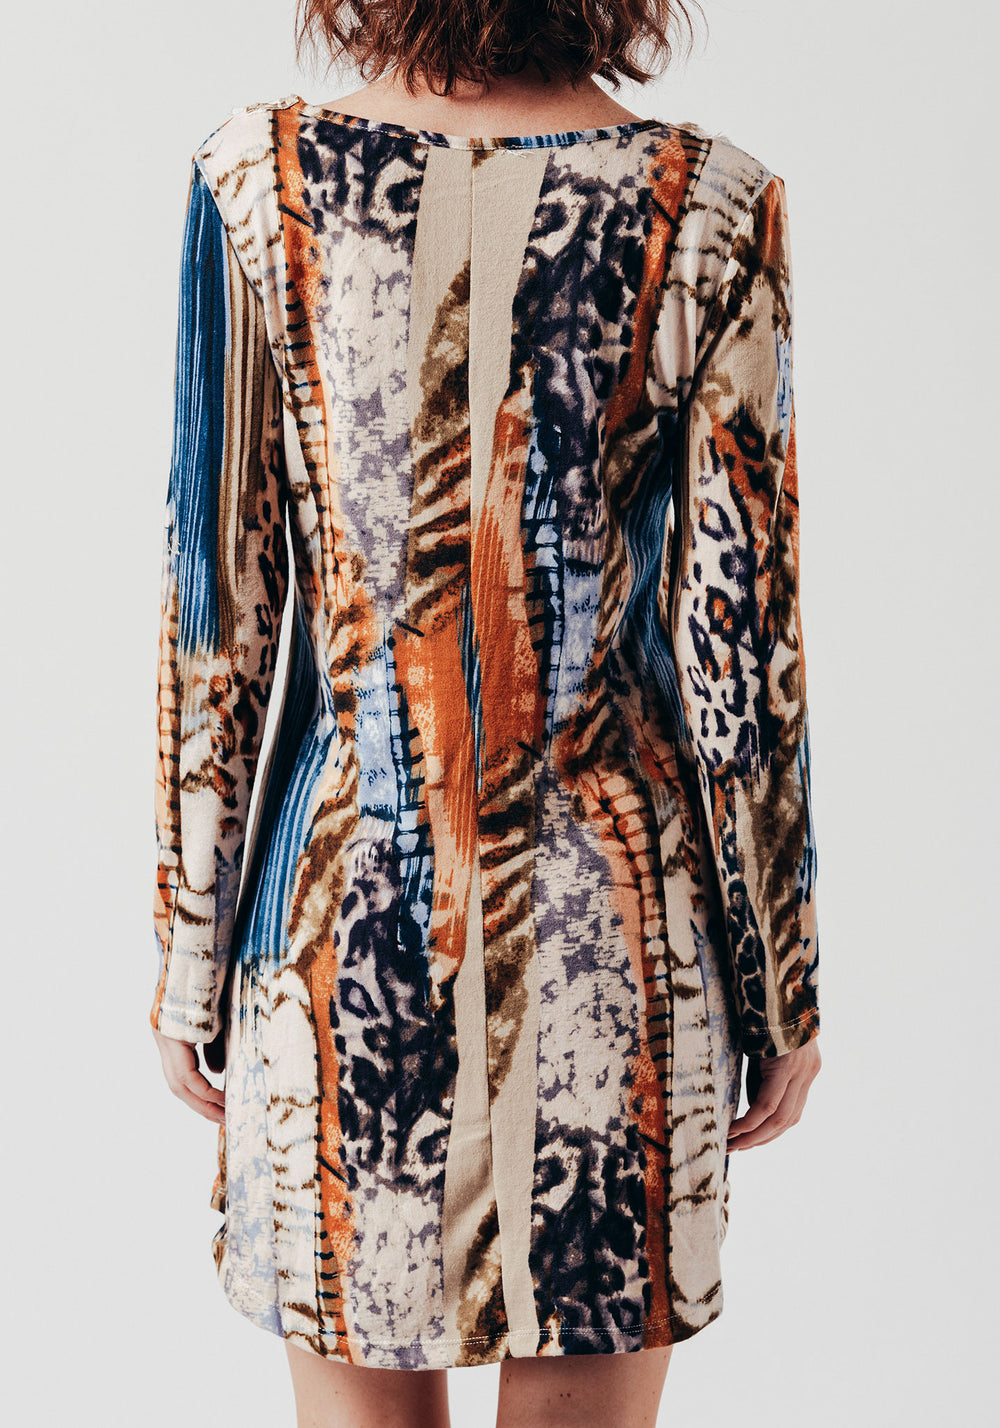 Long Sleeve Swing Dress in Multi Abstract Print